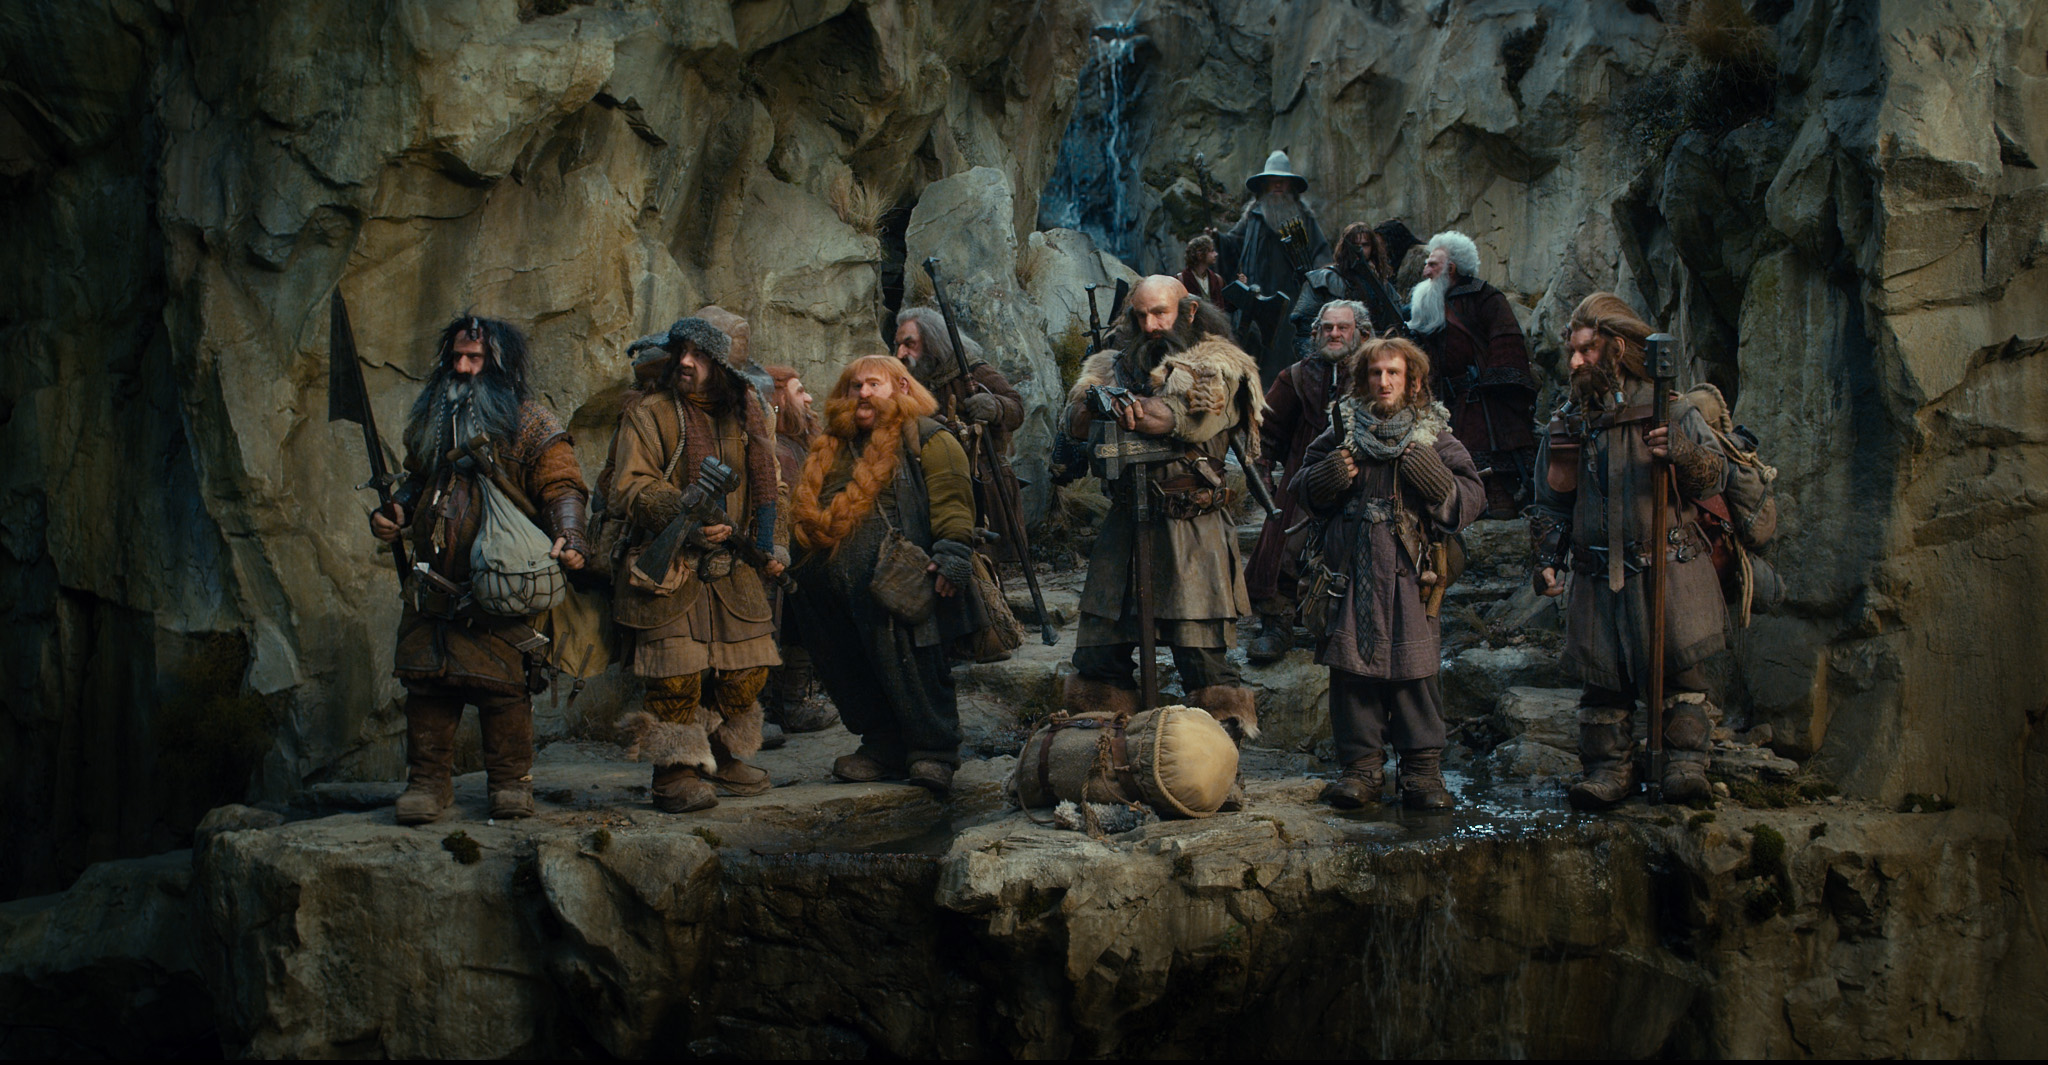 (l to r) Bifur (William Kircher), Bofur (James Nesbitt), Nori (Jed Brophy), Bombur (Stephen Hunter), Oin (John Callan), Dwalin (Graham McTavish), Dori (Mark Hadlow), Ori (Adam Brown), Balin (Ken Stott), and Gloin (Peter Hamilton) with Bilbo Baggins (Martin Freeman) and Gandalf (Ian McKellen) in The Hobbit: An Unexpected Journey (2012)